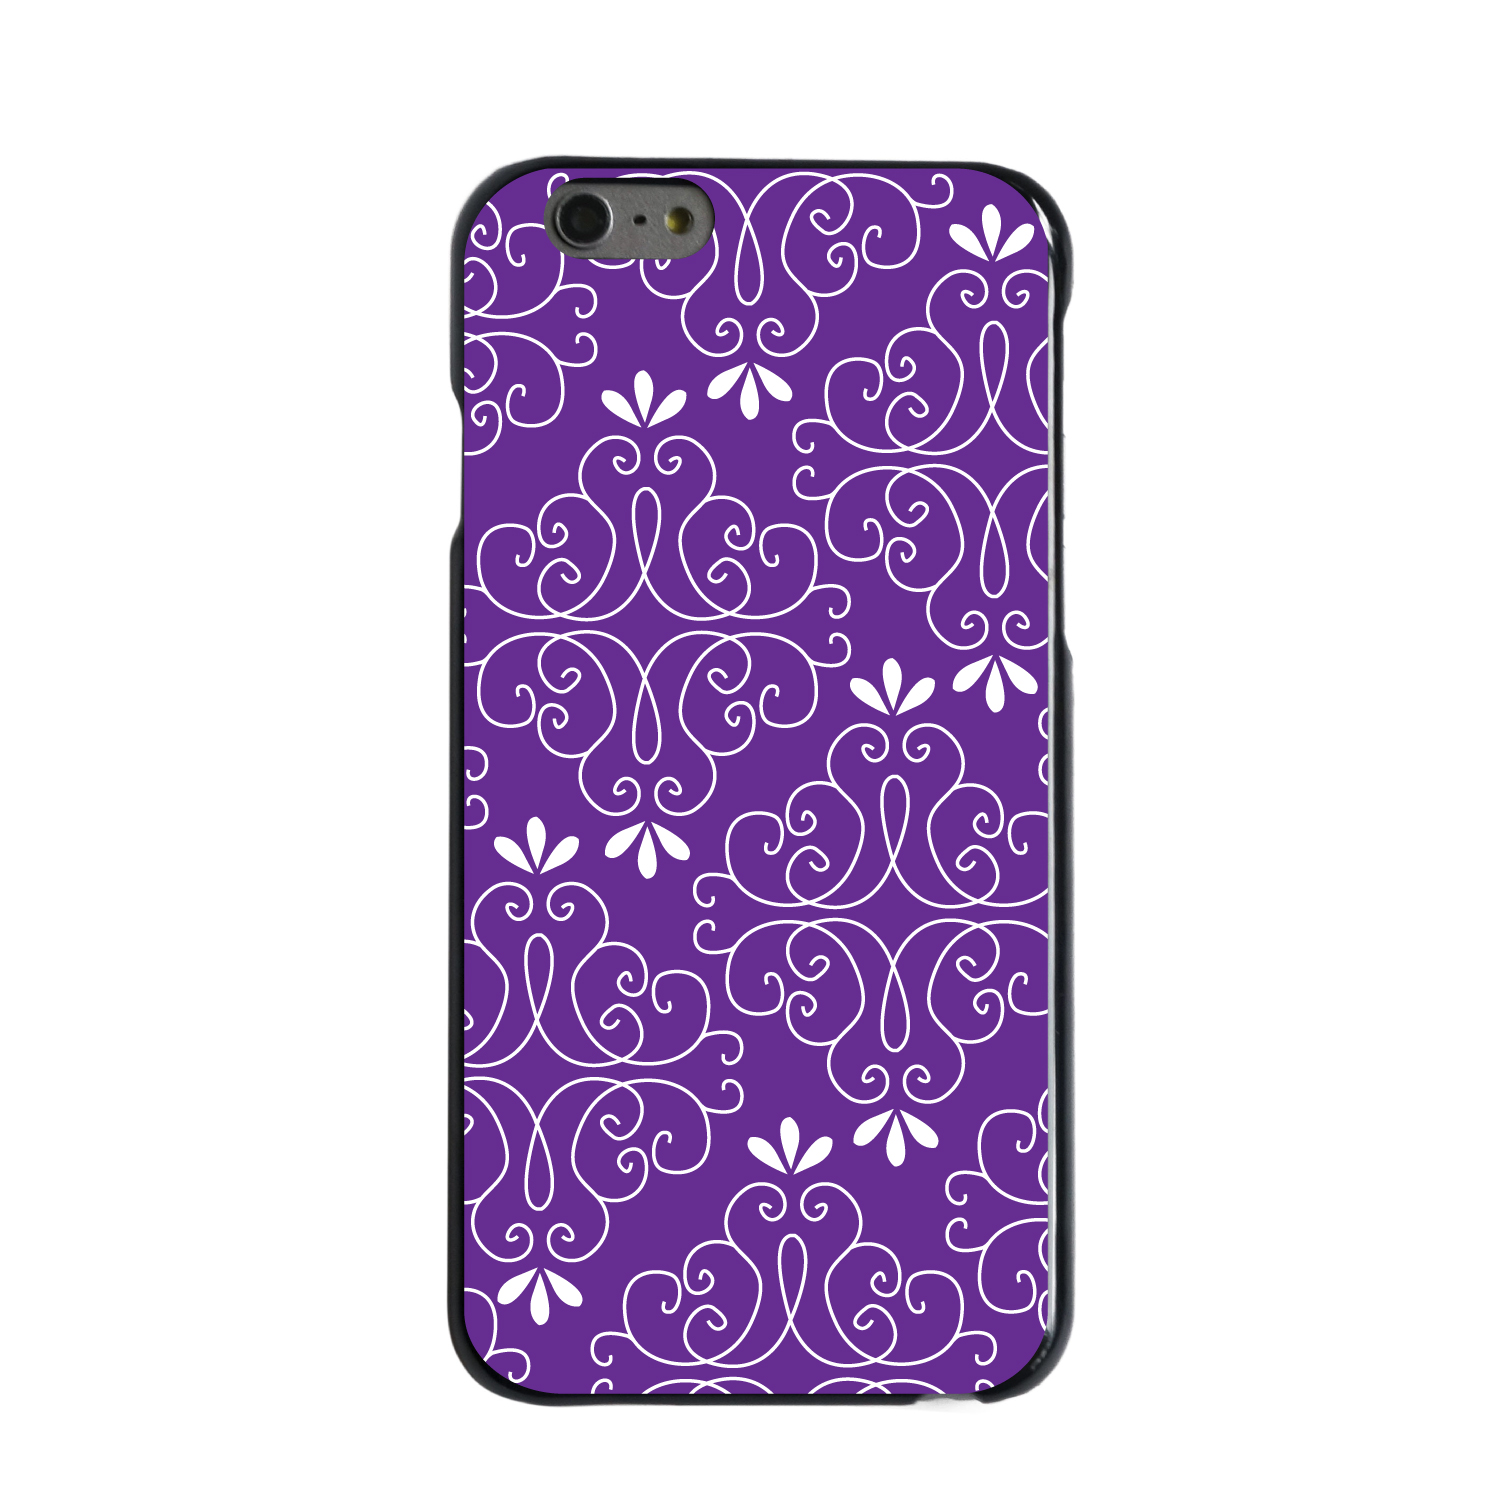 "CUSTOM Black Hard Plastic Snap-On Case for Apple iPhone 6 / 6S (4.7"" Screen) - Purple White Floral"